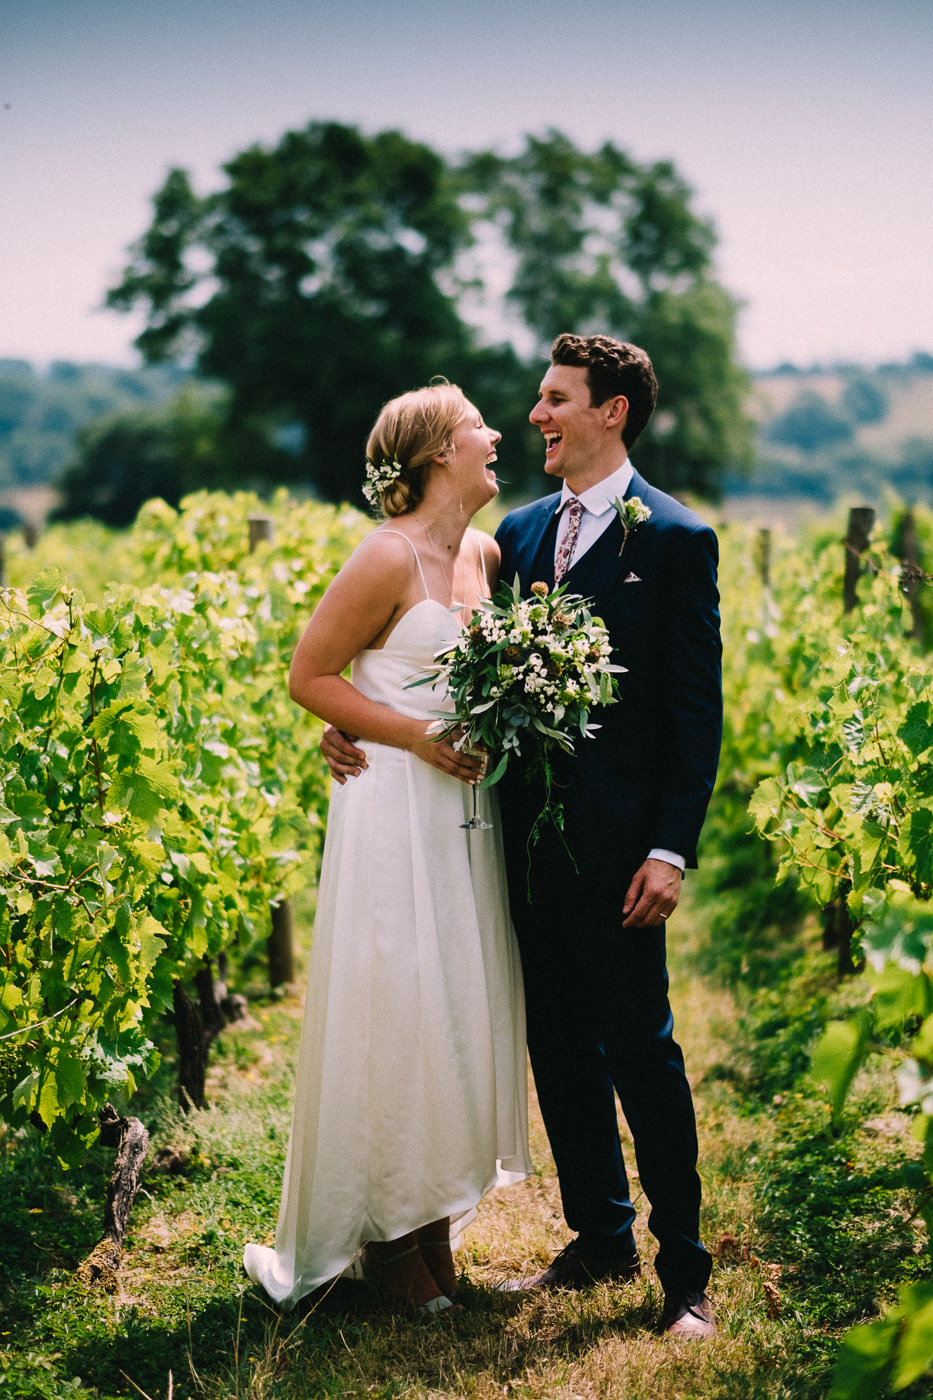 COWBRIDGE GLYNDWR VINEYARD WEDDING PHOTOGRAPHY CARDIFF SOUTH WALES 044